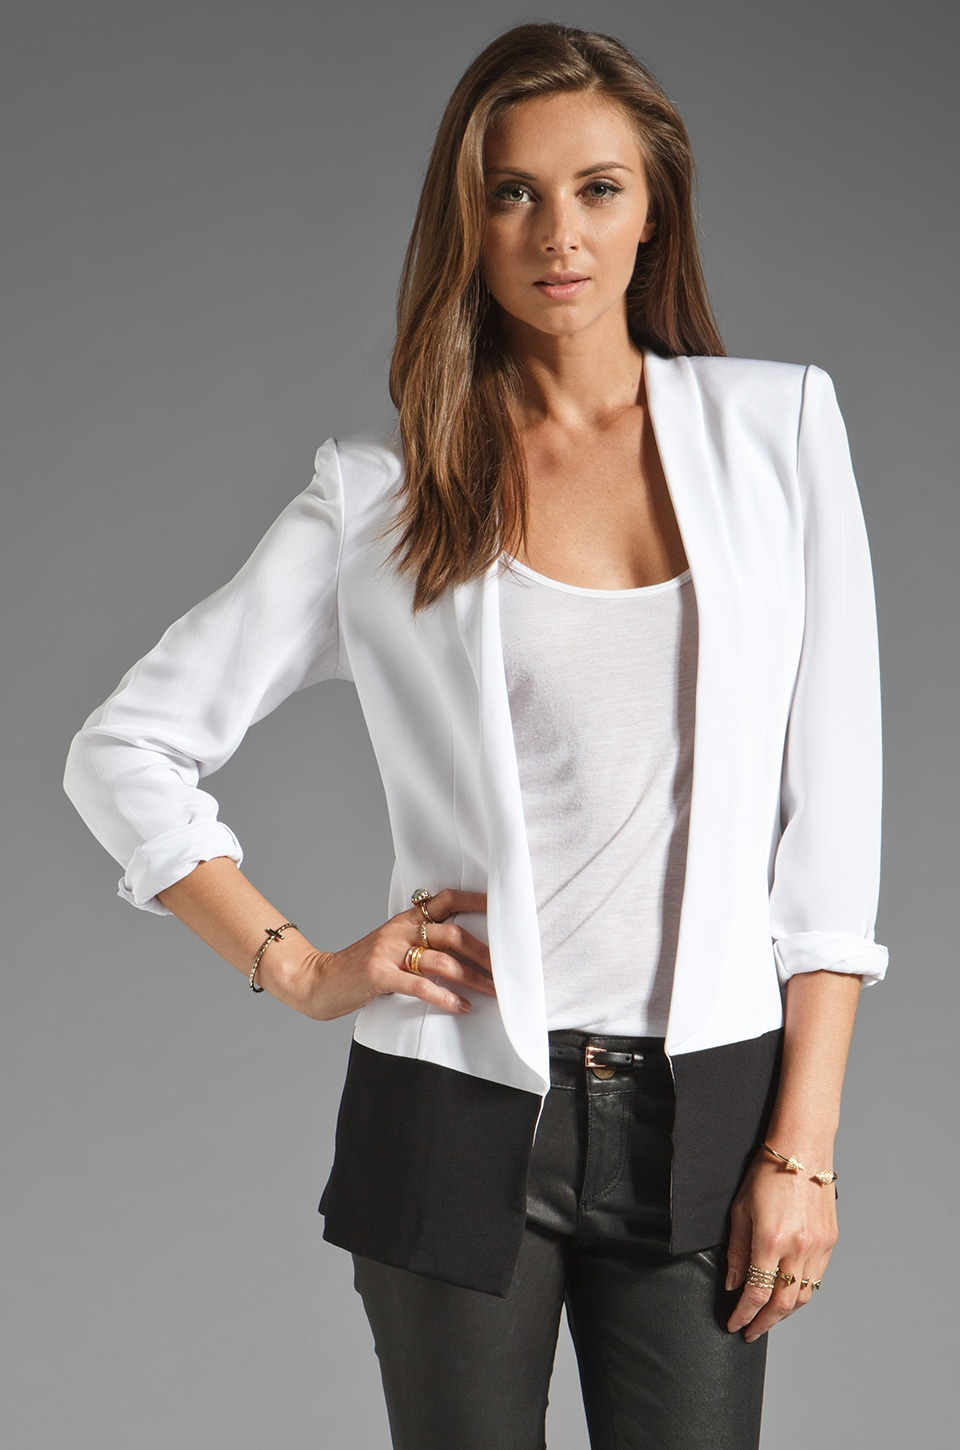 Jay Godfrey Nickel Colorblock Blazer in White/Black